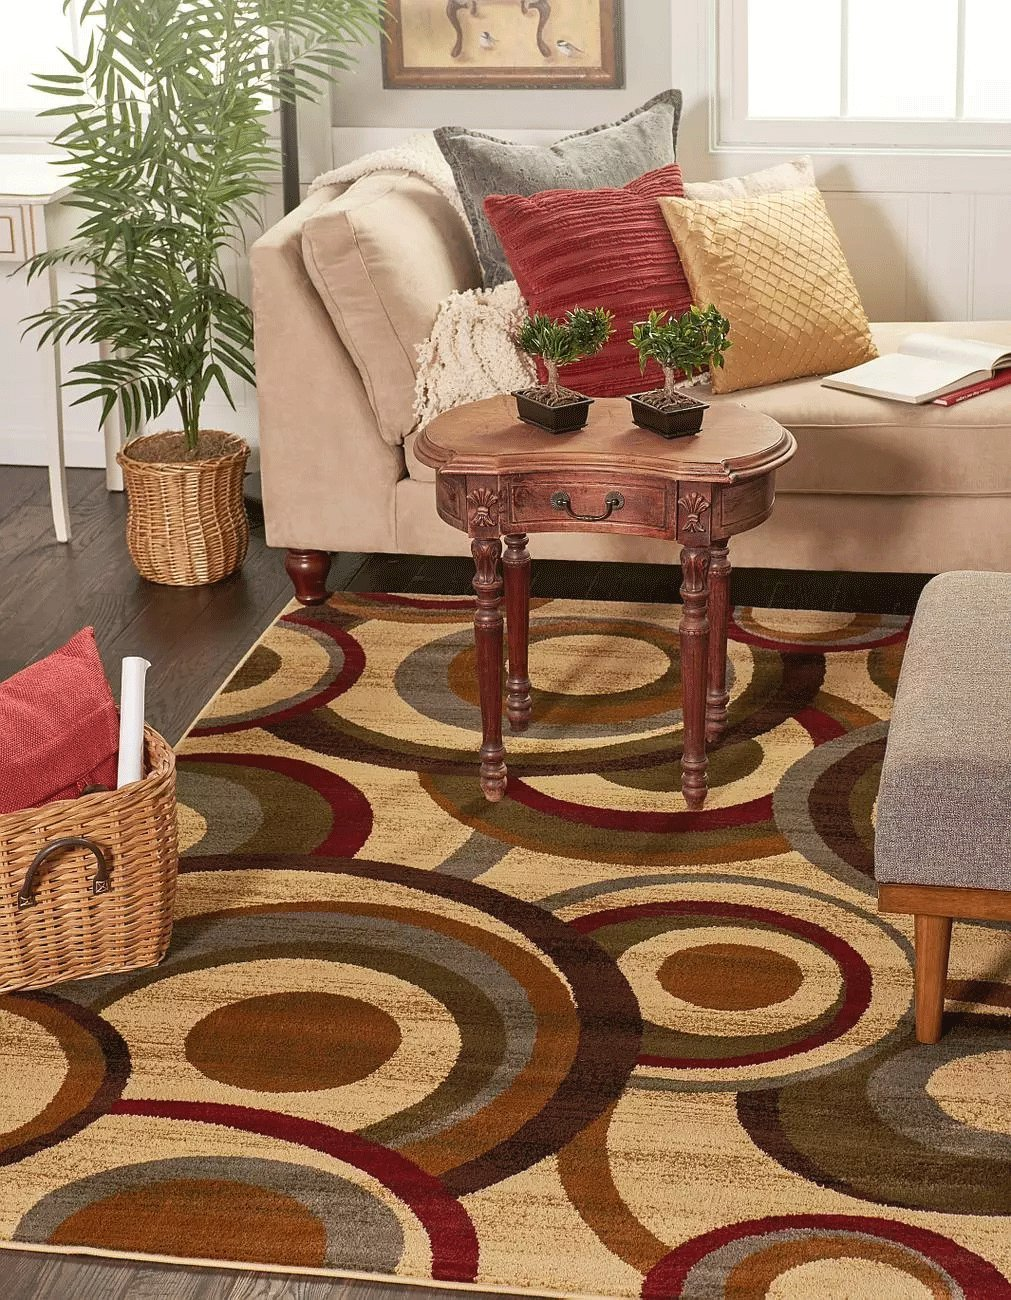 Top 5 Living Room Rugs: Buying Guide & Reviews 4